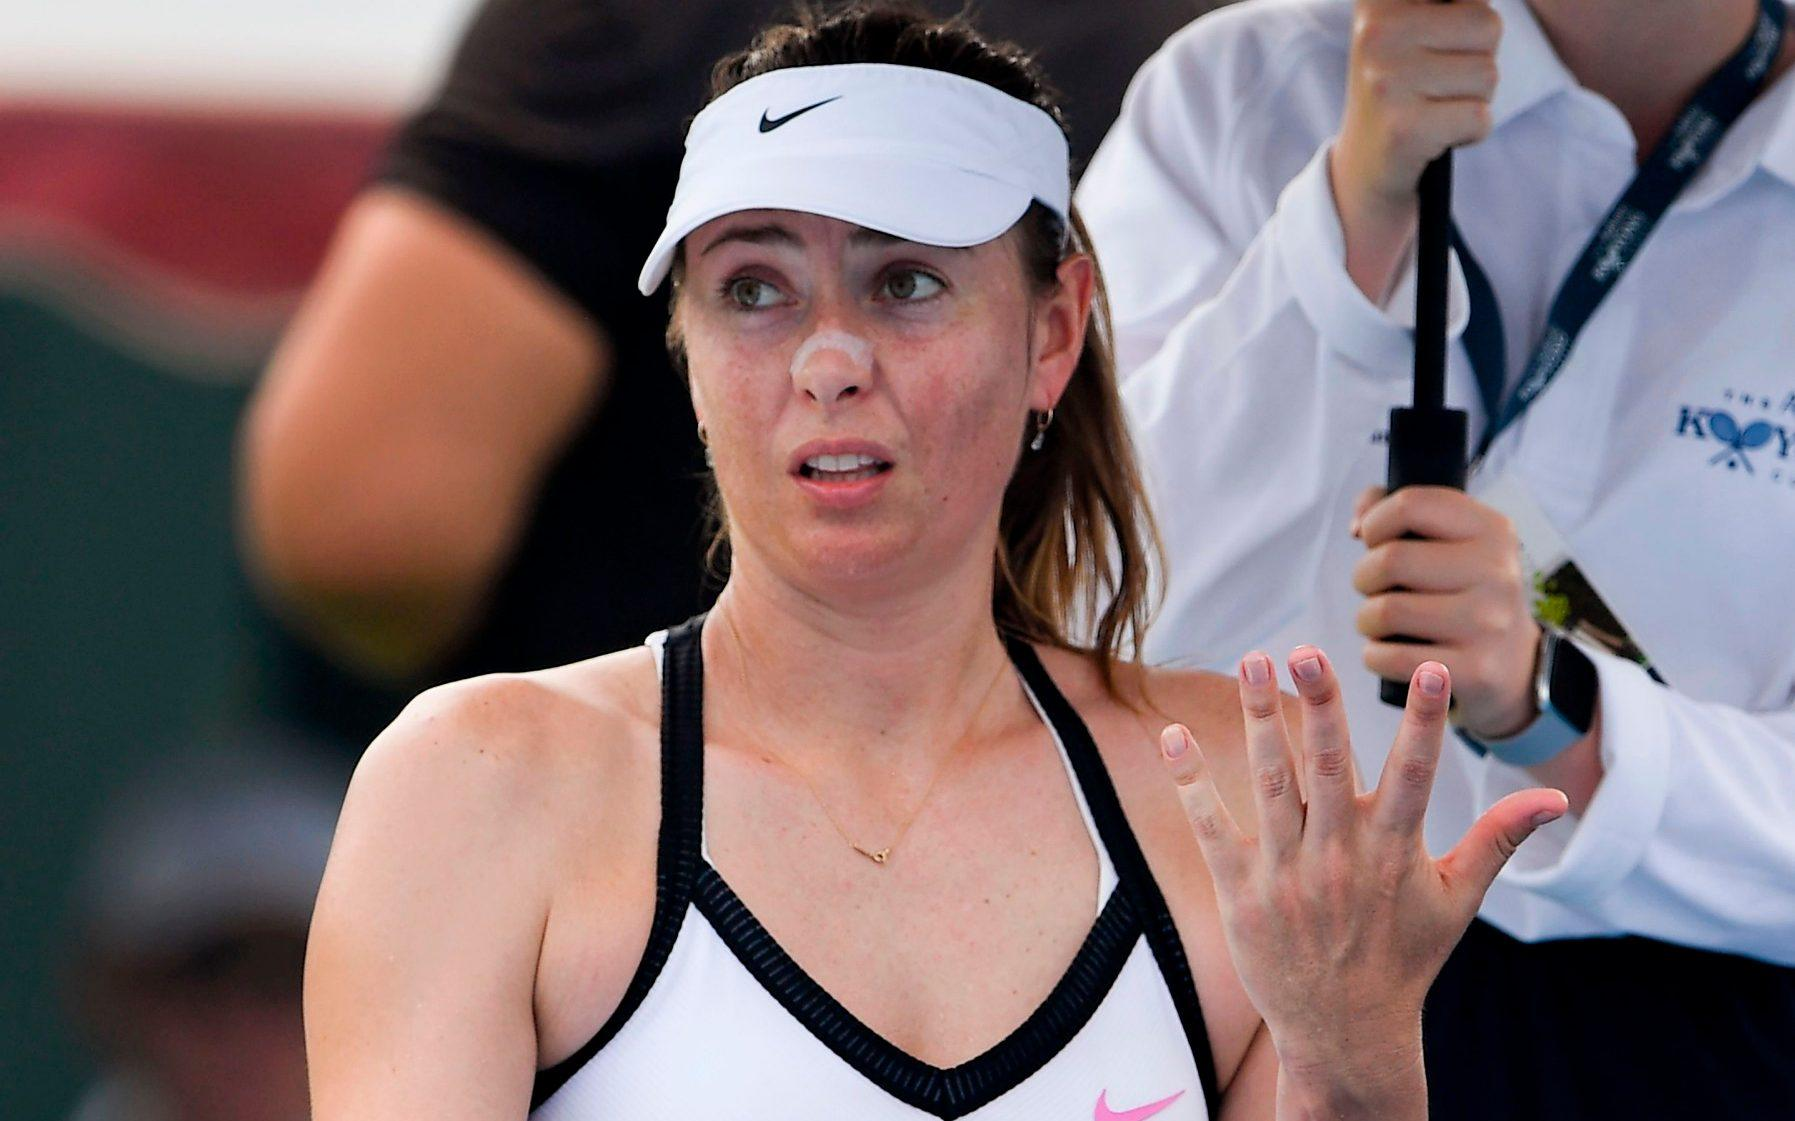 Maria Sharapova Breaks Off The Match And Qualification For